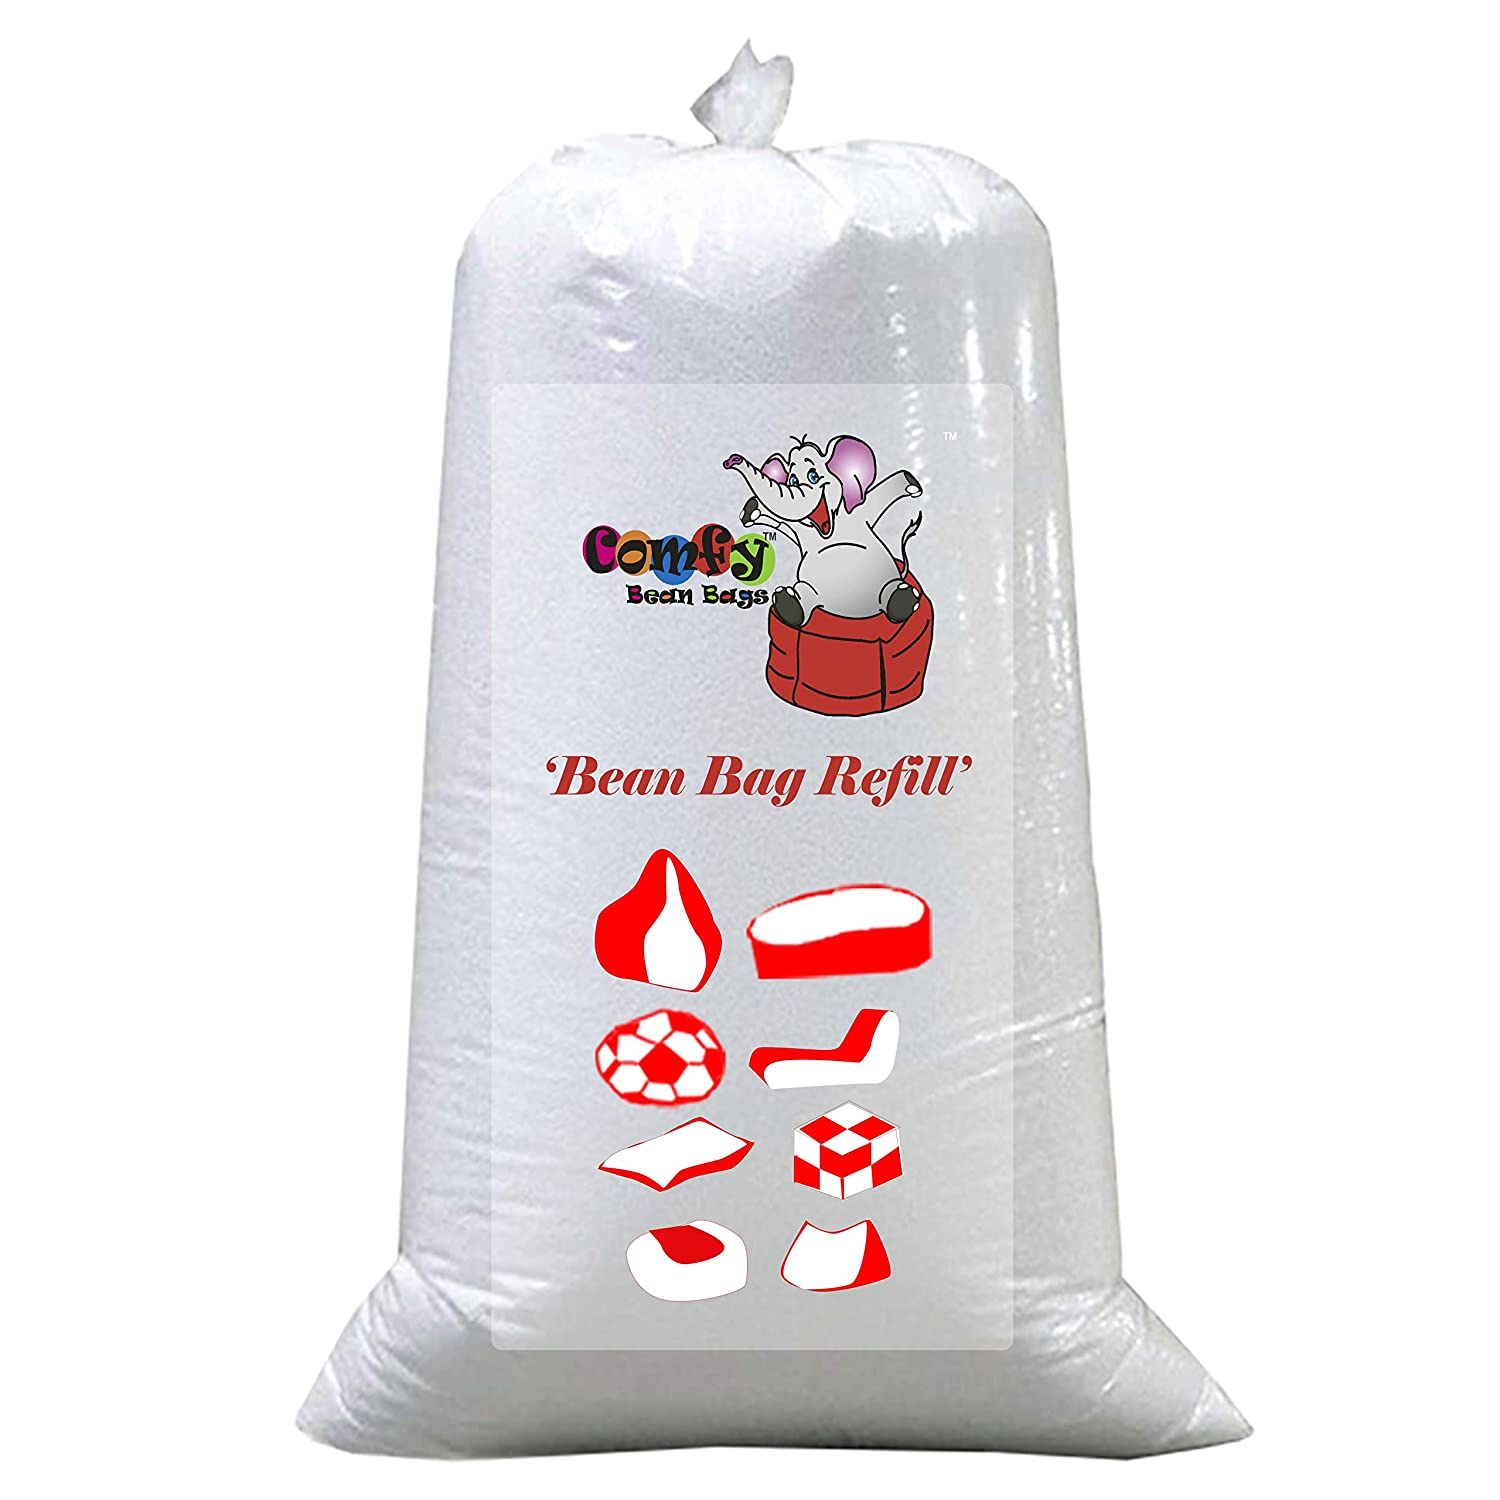 Comfy Bean Bags 2kg Filler Beans Pack (white): Amazon: Home & Kitchen